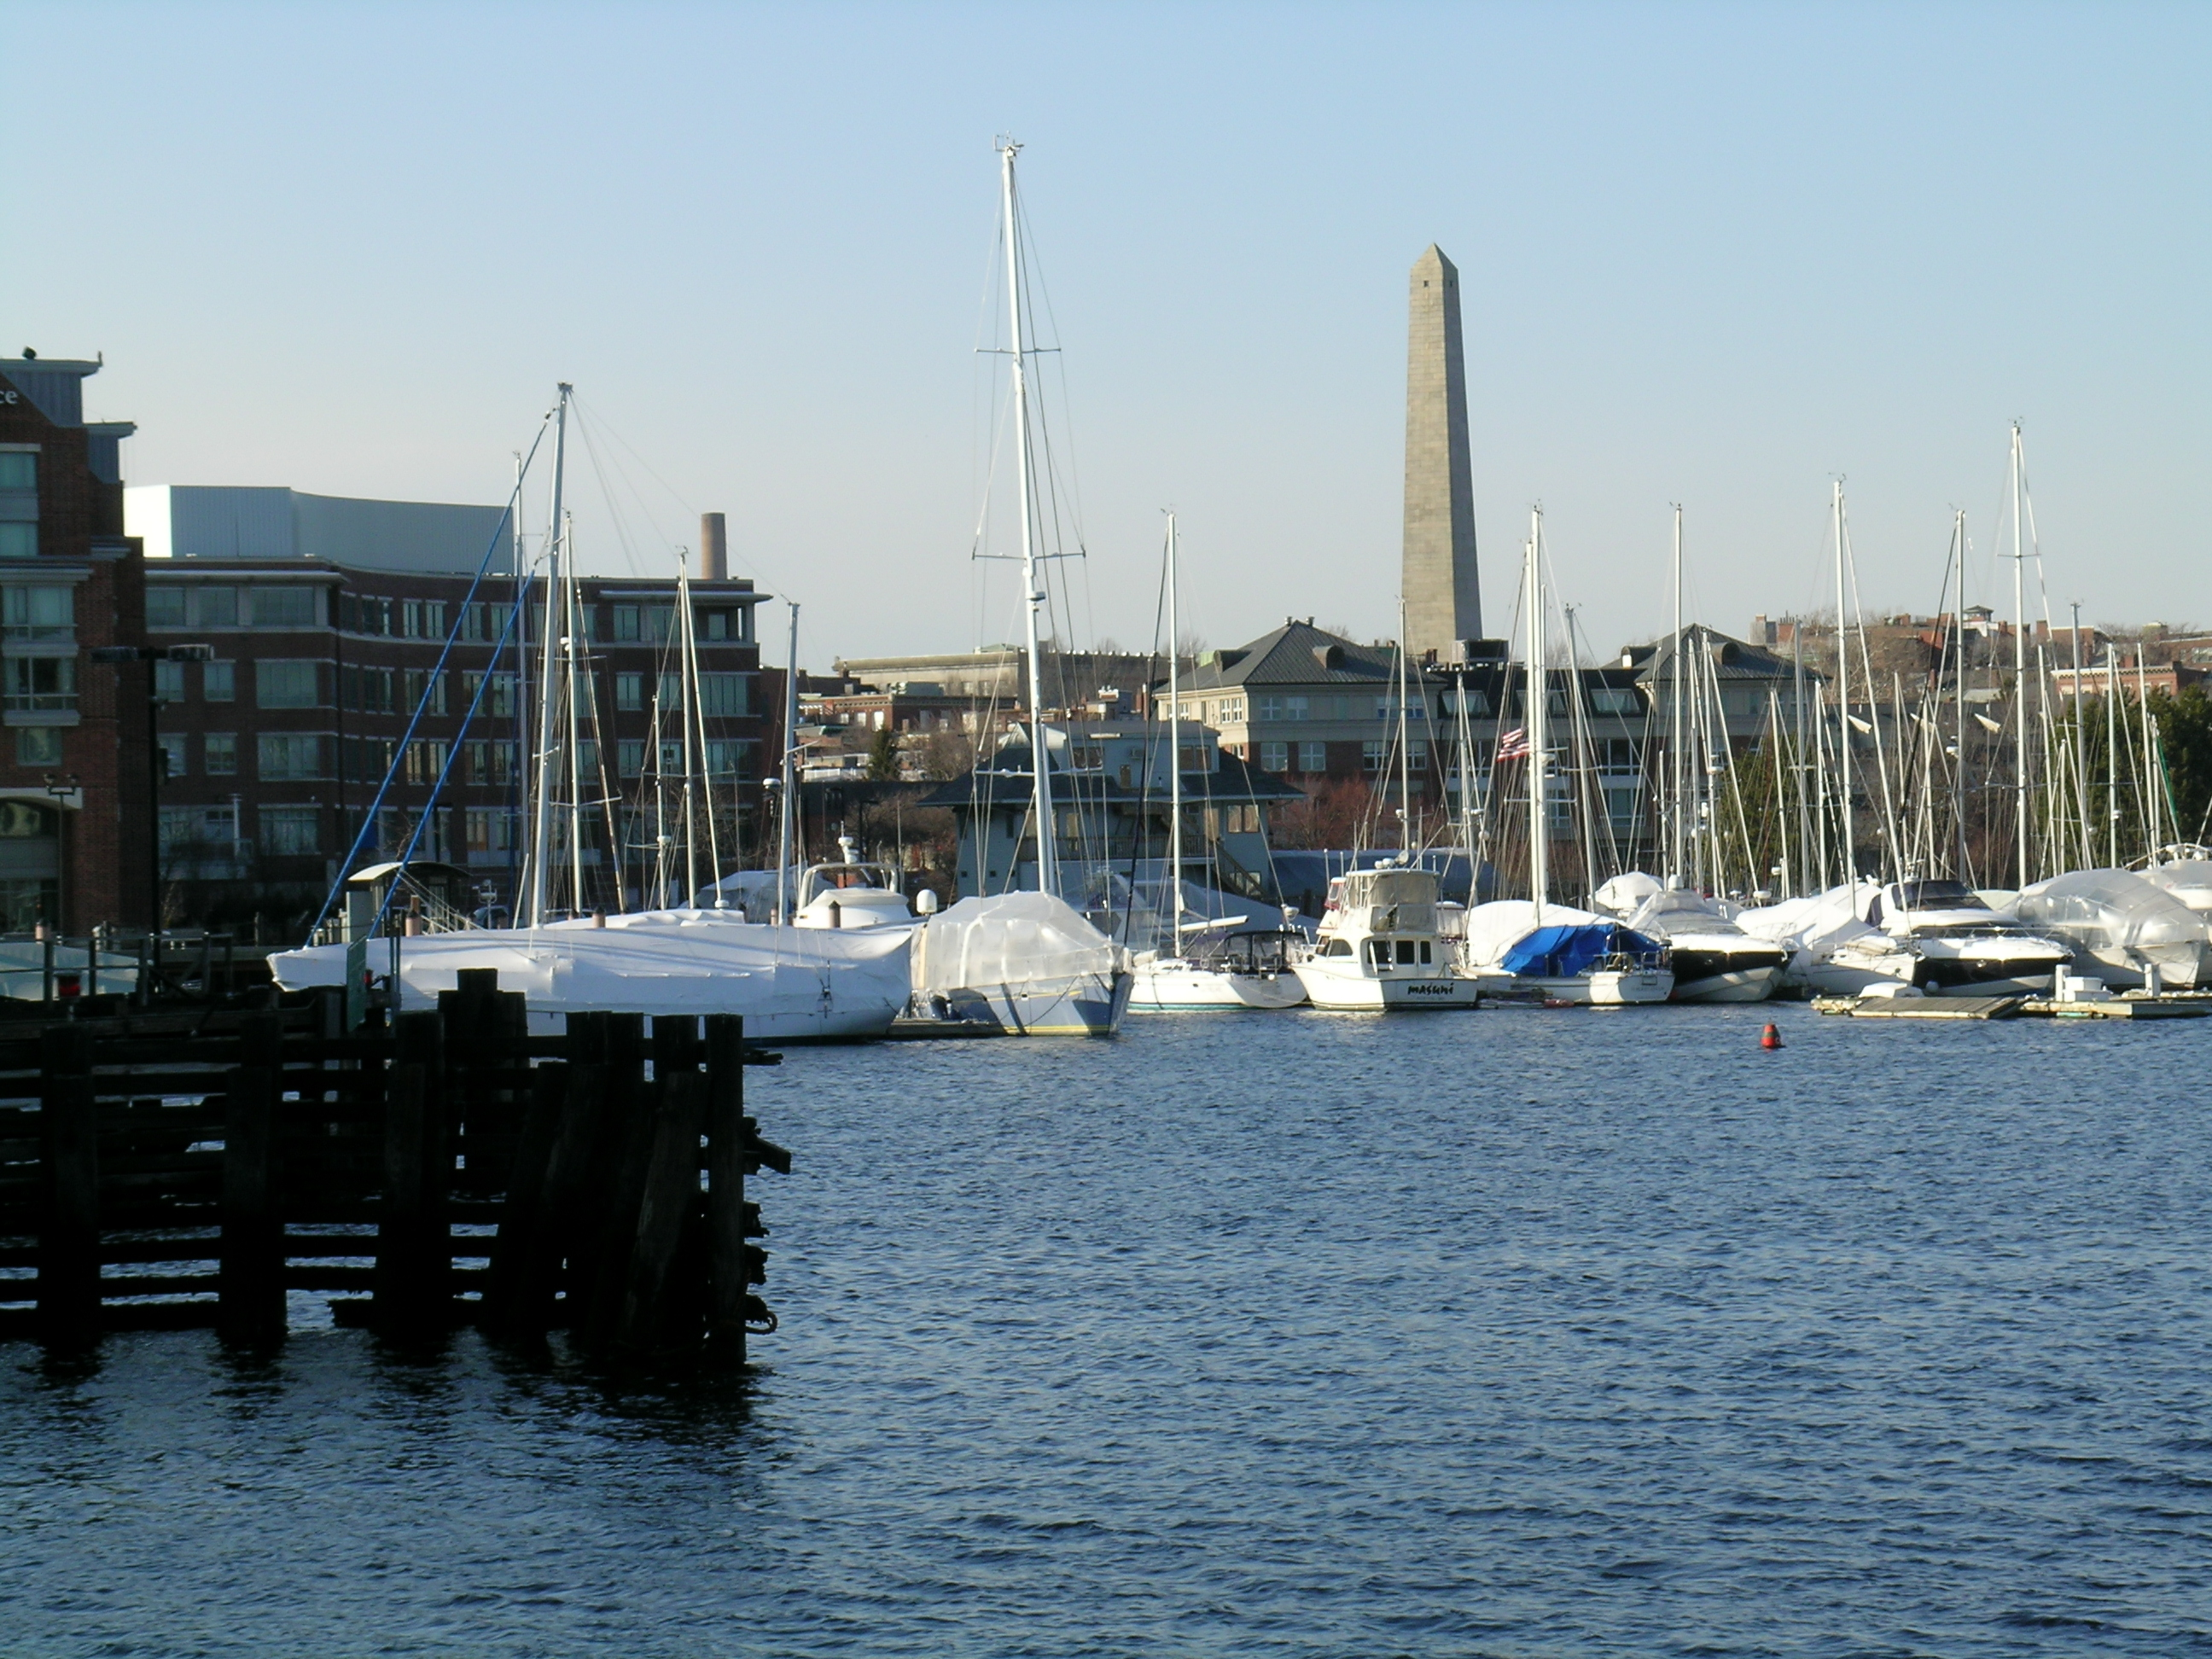 Sailboats moored on the Charlestown side of the Charles River with Bunker Hill Monument in the distance